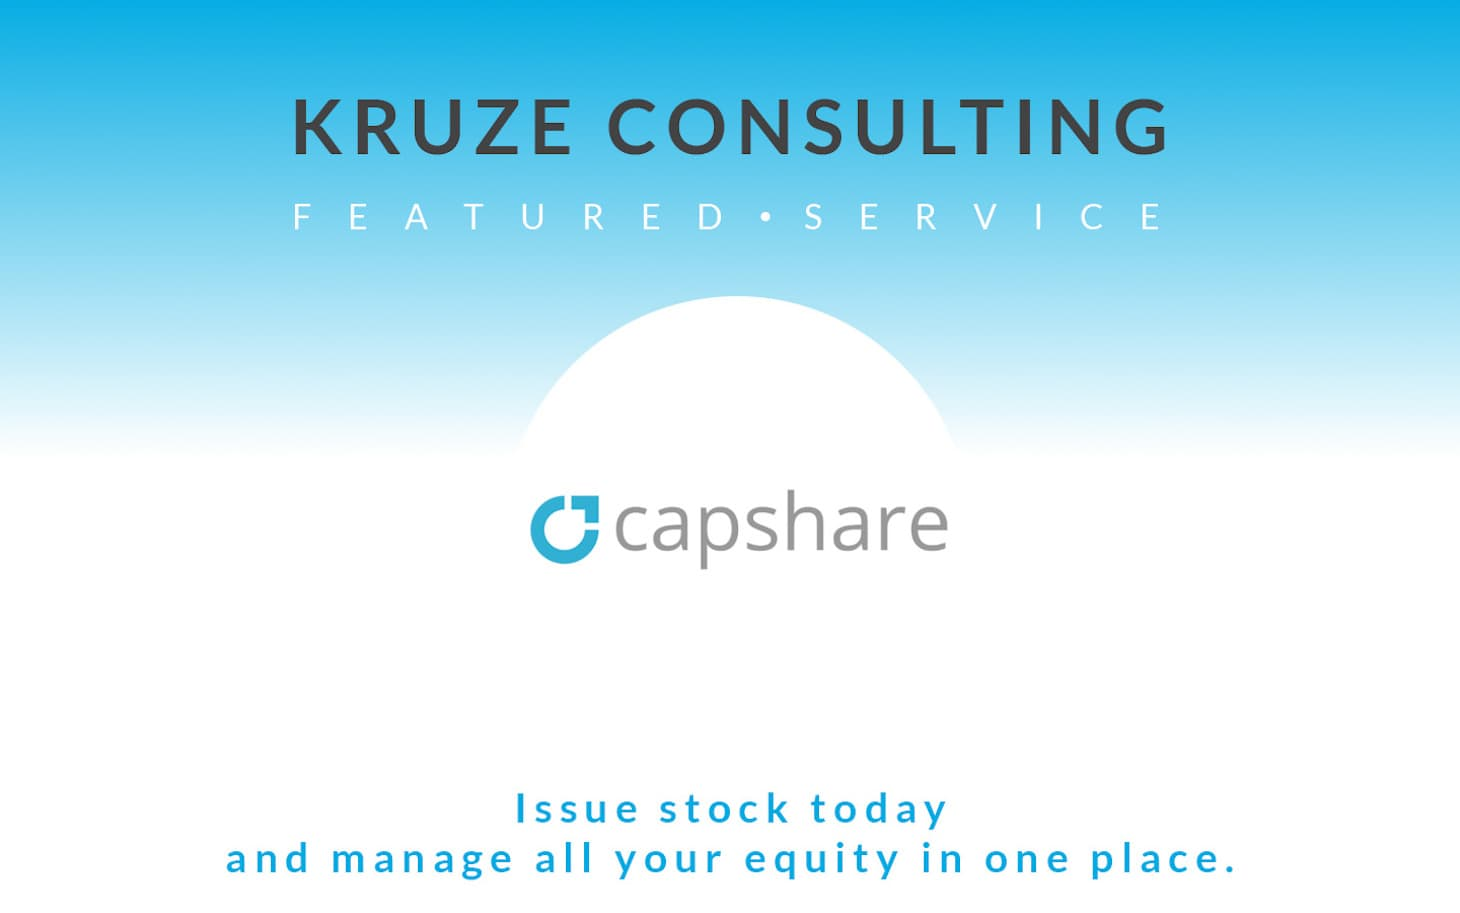 Featured Service - Capshare